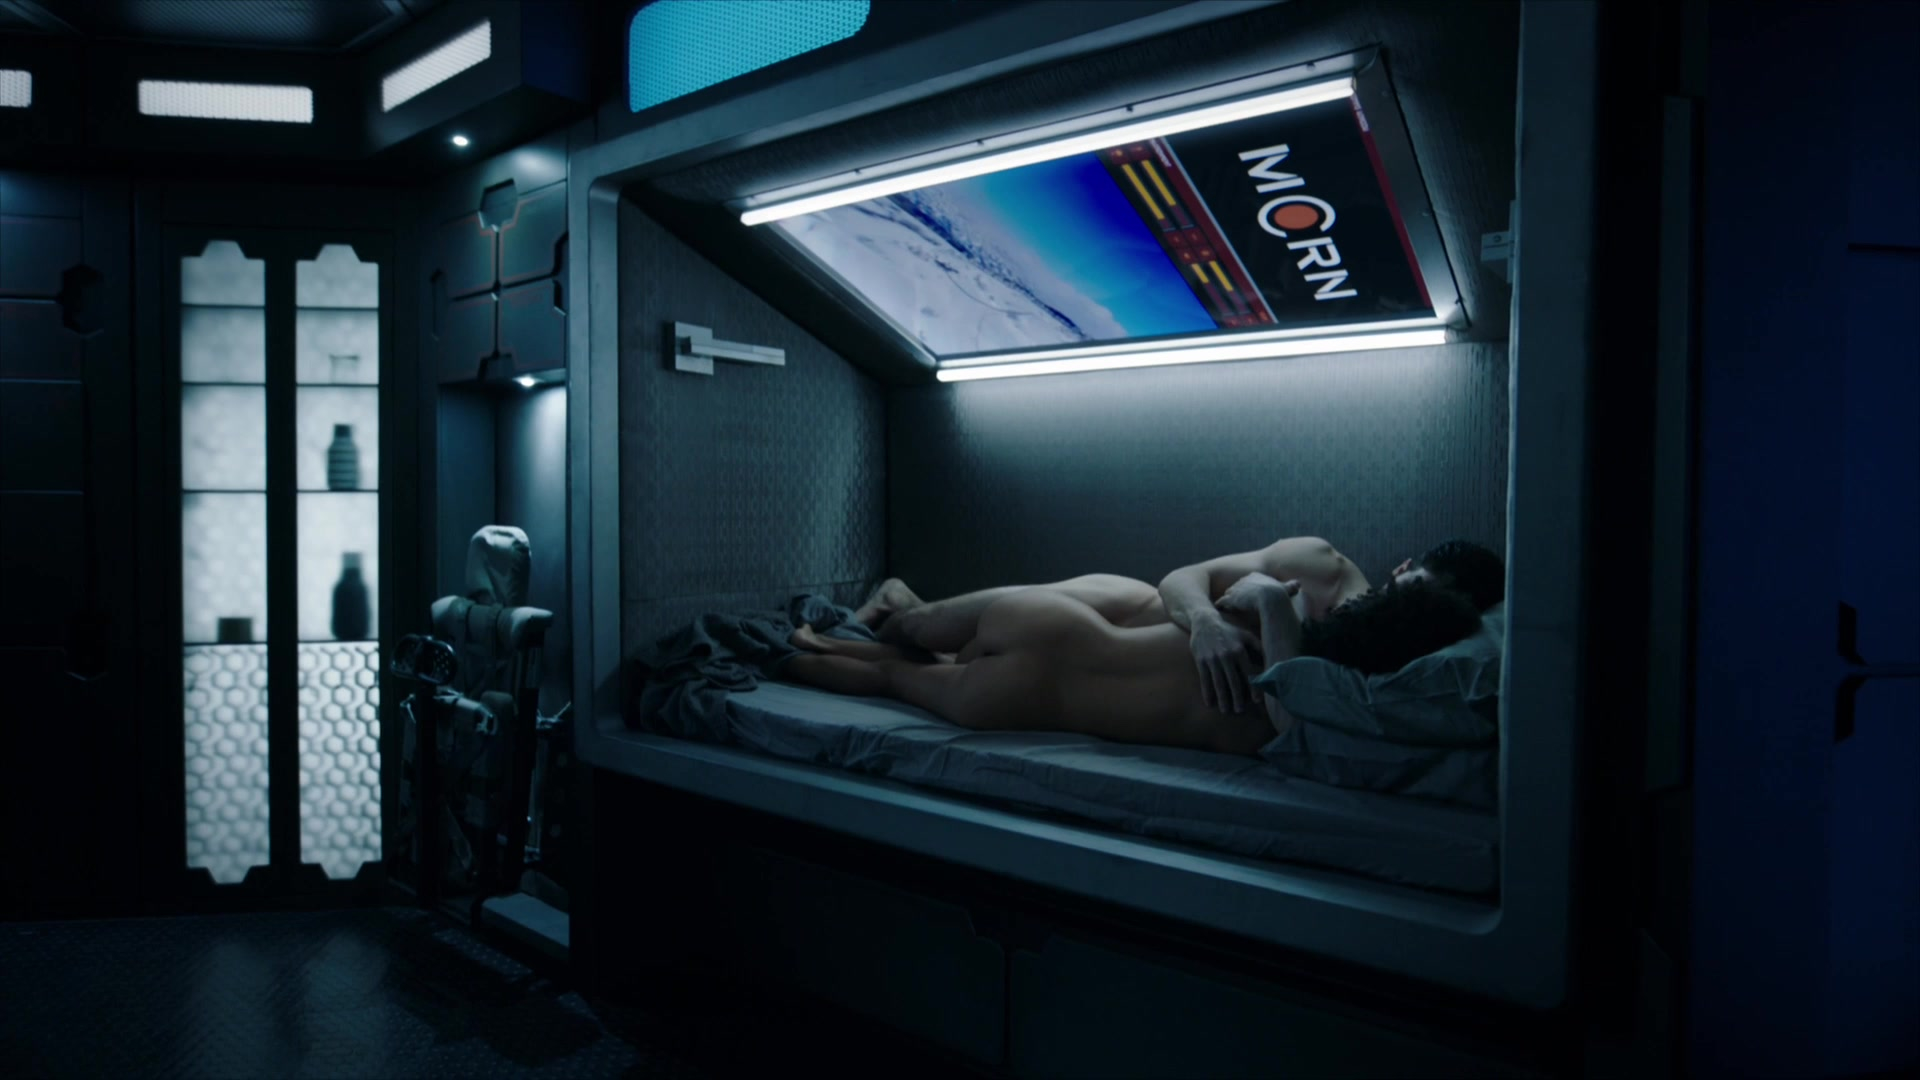 Dominique Tipper nude - The Expanse S03E06 (2018)